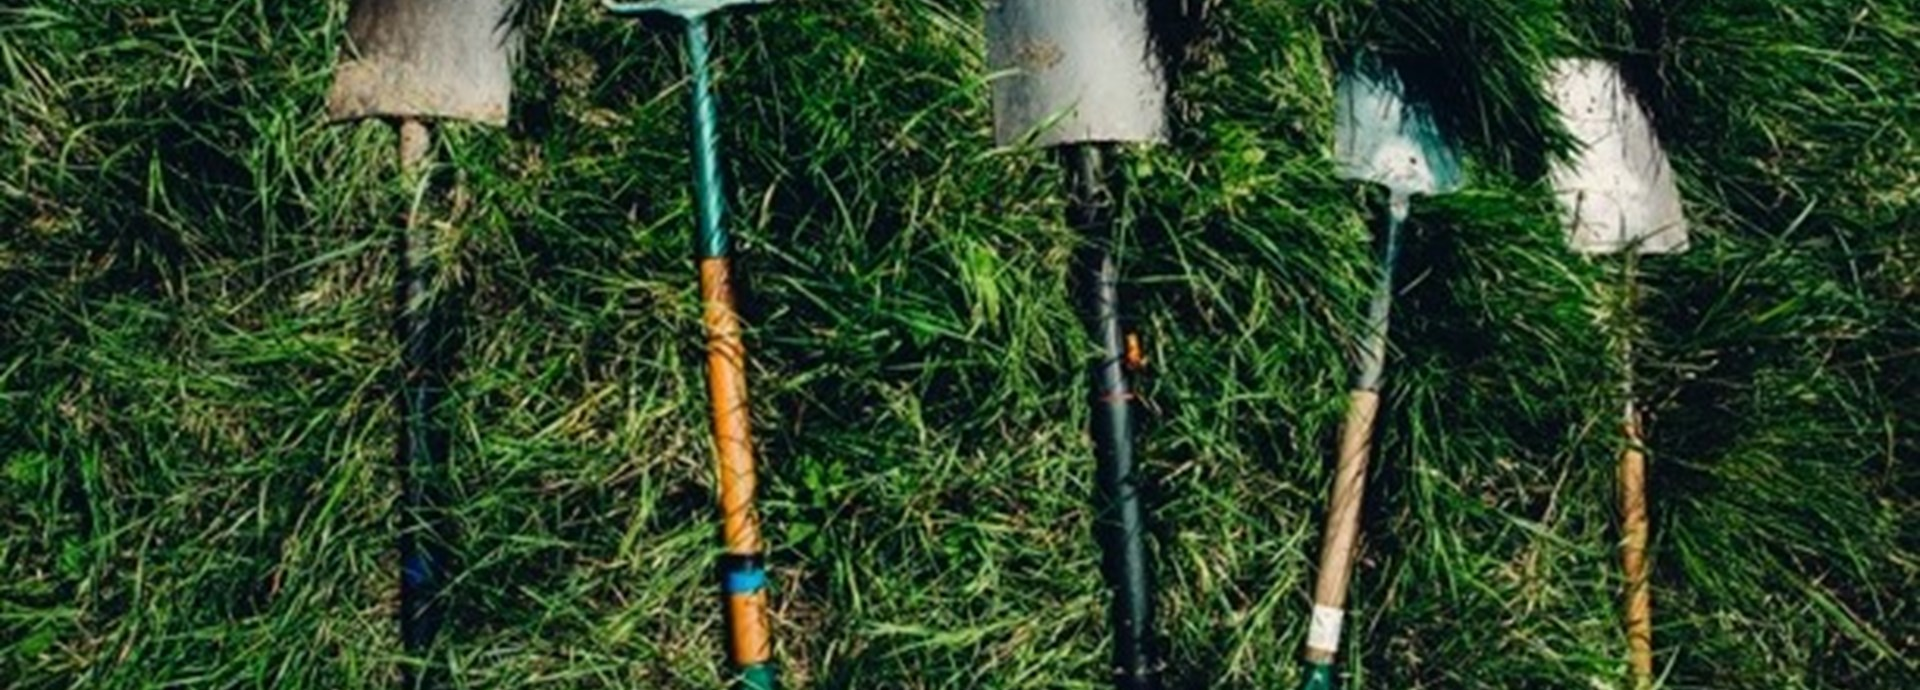 Gardening tools laid out on grass